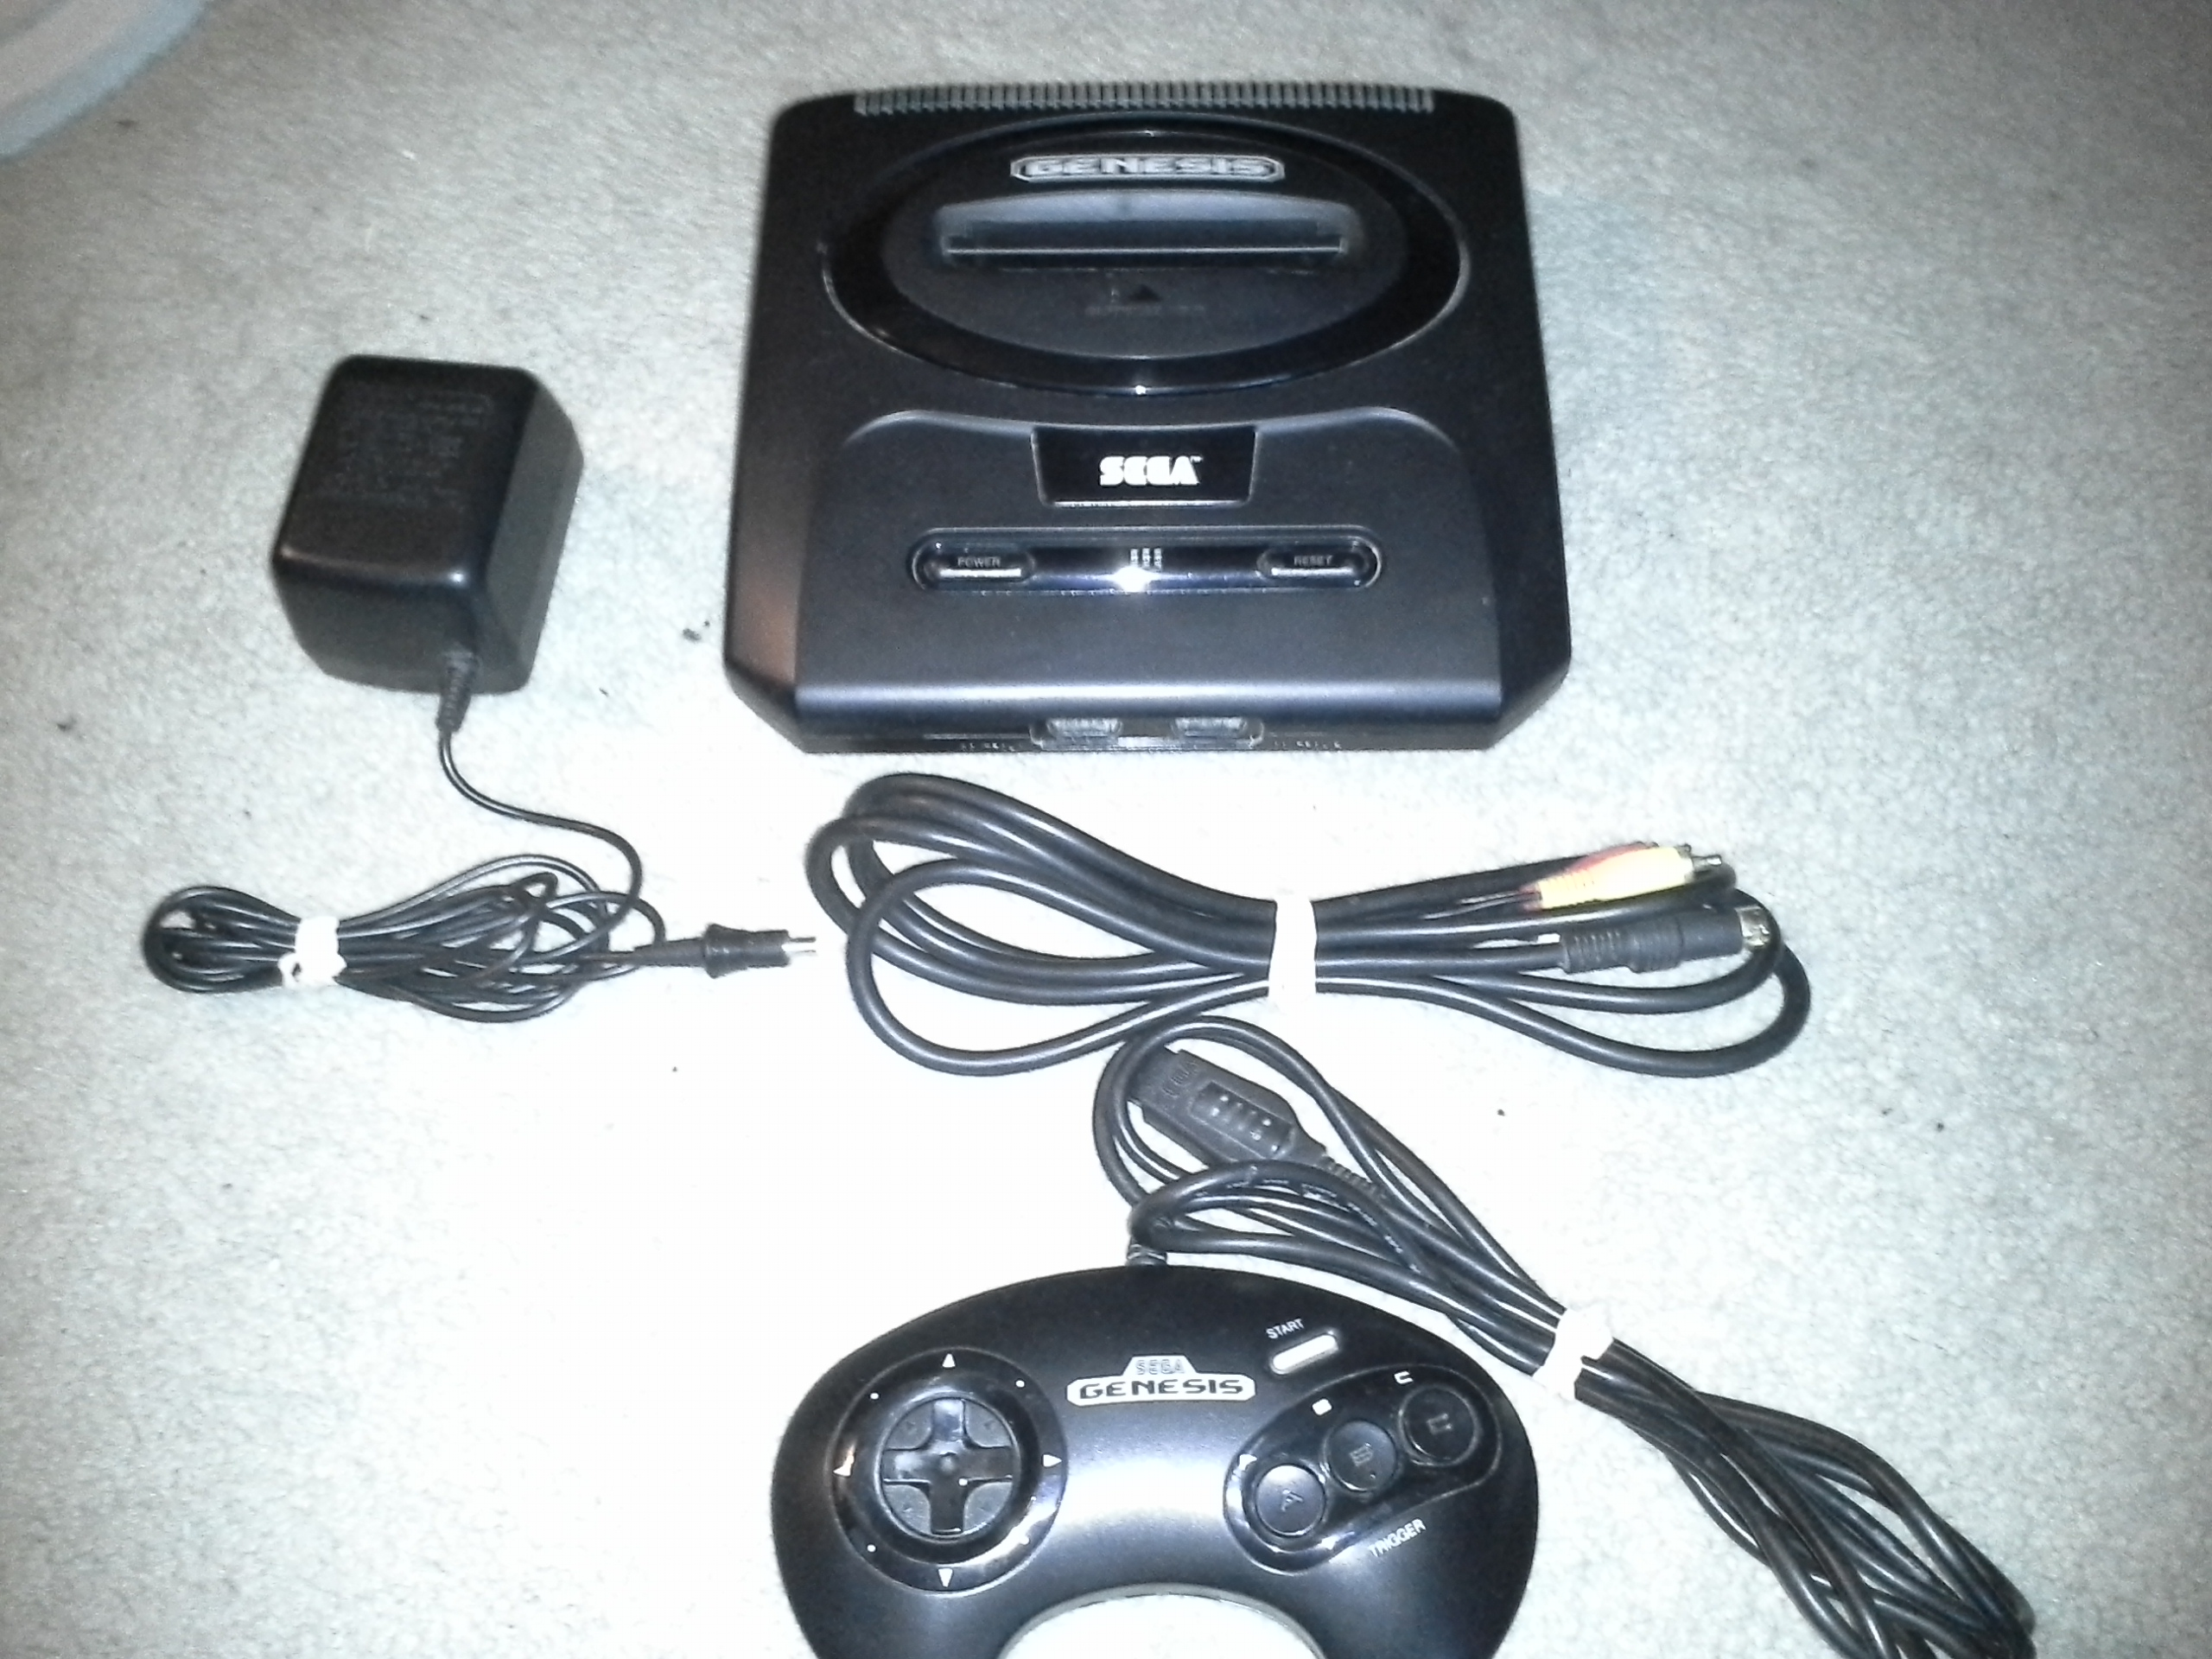 FS: Sega Genesis Model 2 console with controller and hookups